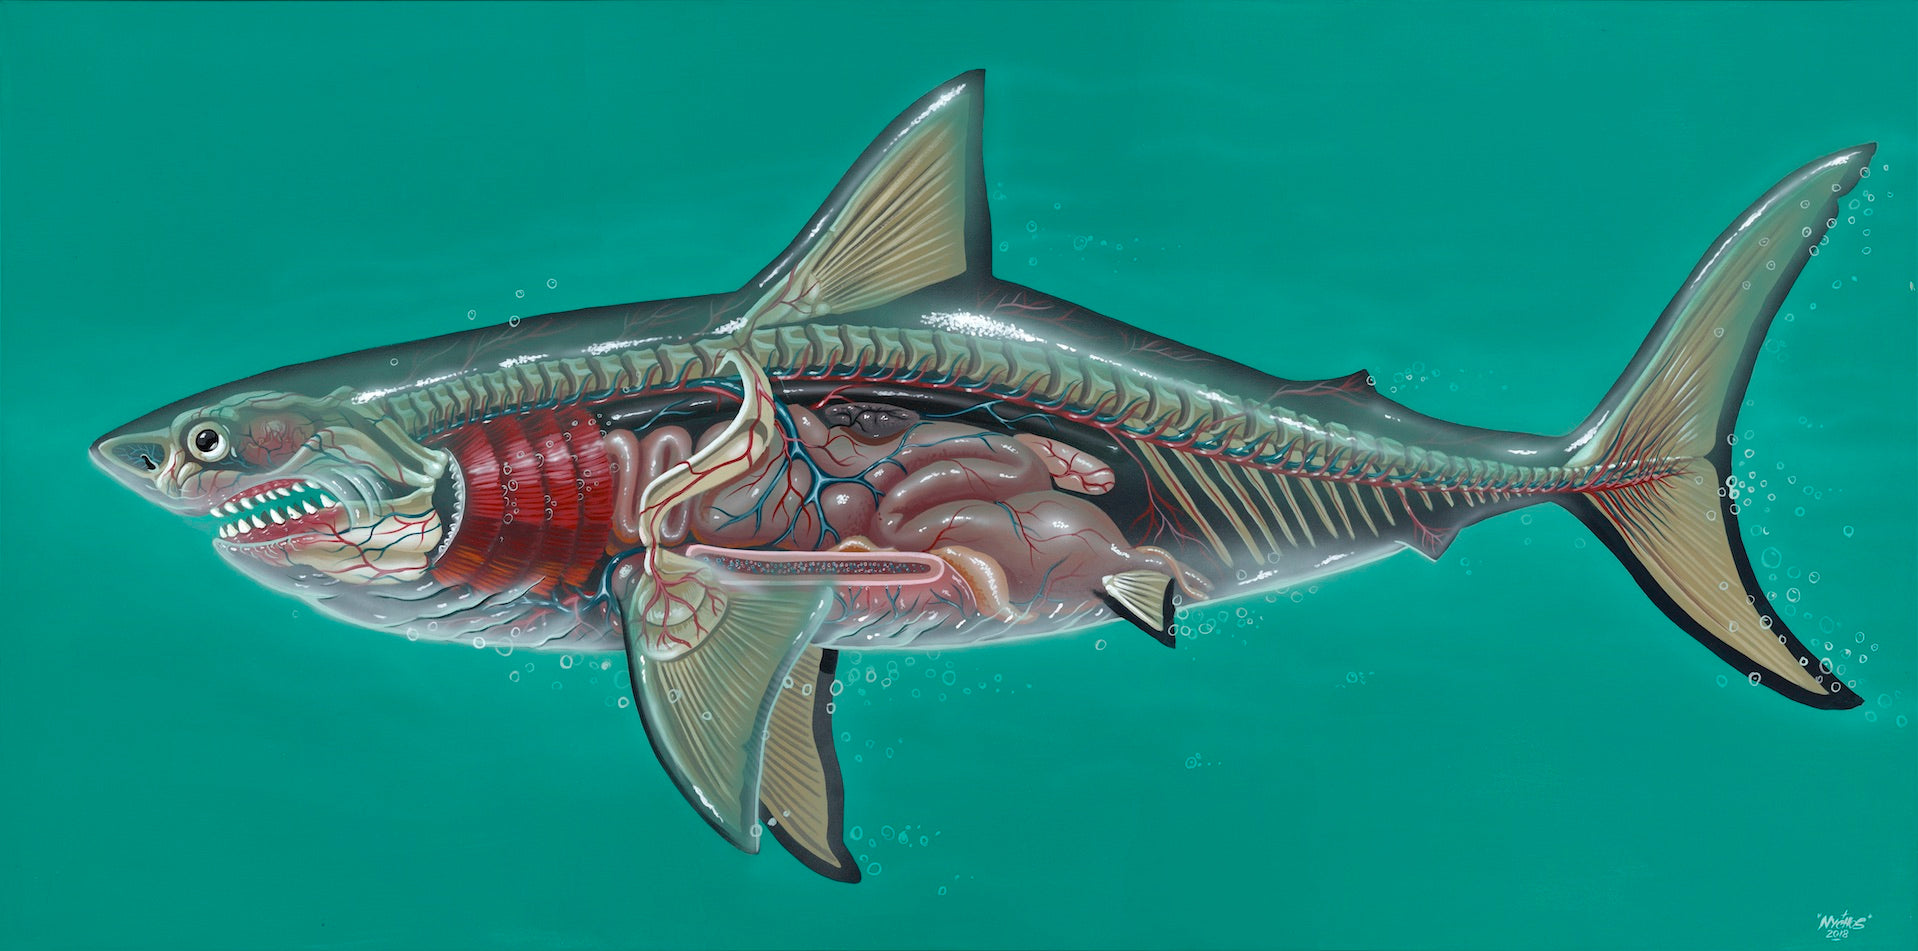 Nychos: Translucent Great White Shark